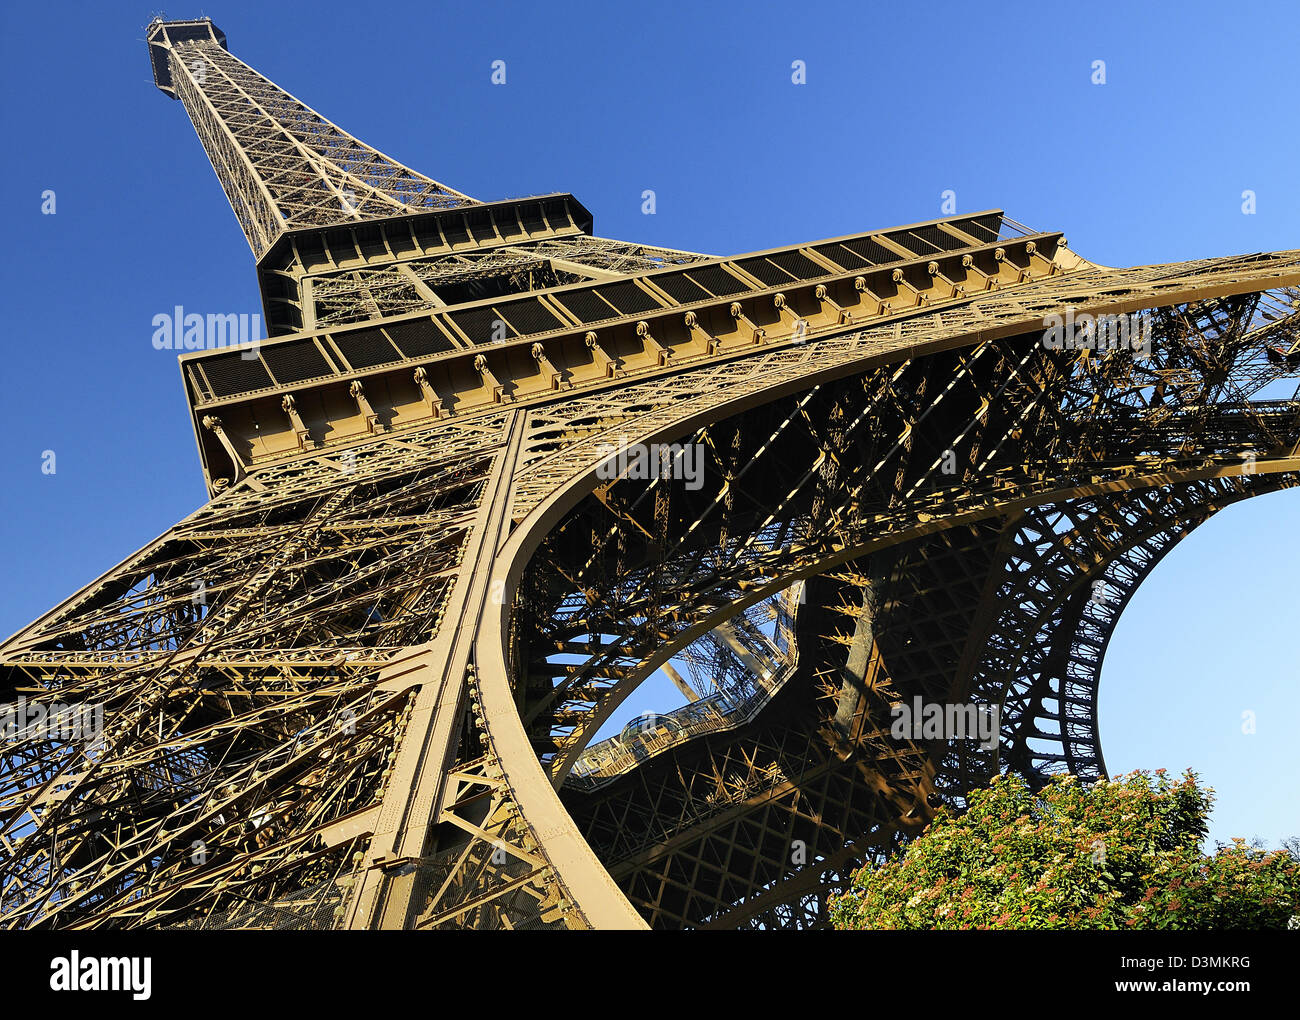 architectural detail of the famous Eiffel tower, Paris, France - Stock Image